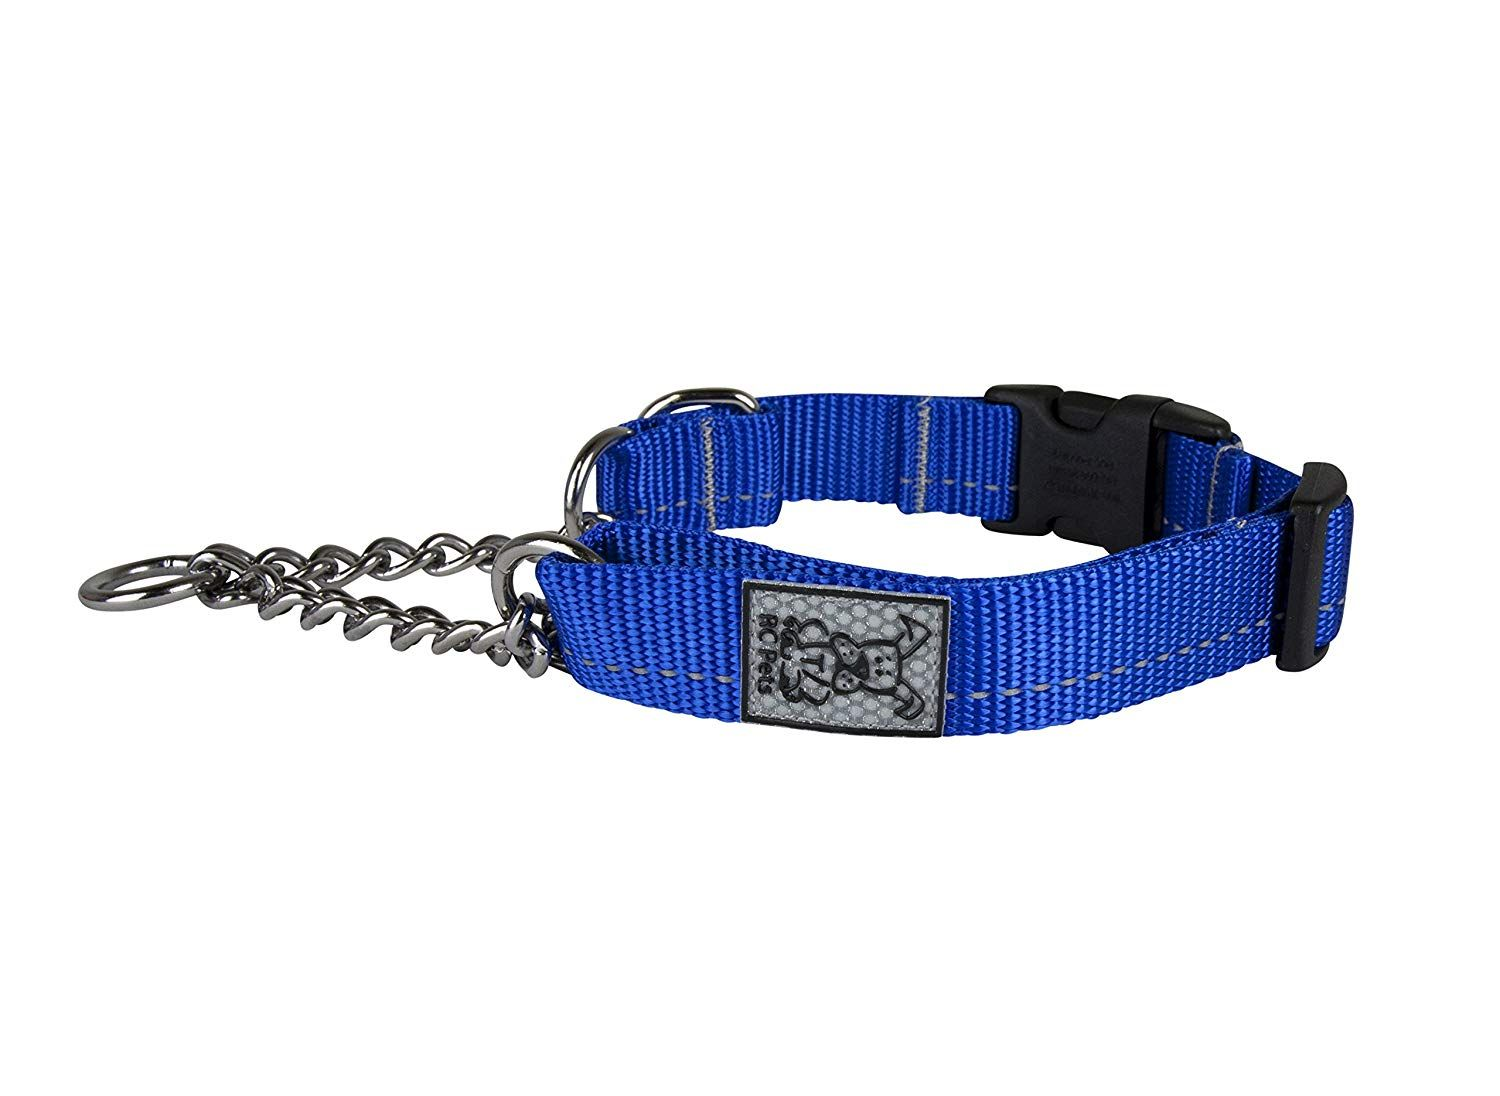 Rc Pet Products Primary Collection Martingale Dog Training Clip Collar Nice Of You To Have Dropped By To View Our Picture This Martingale Dog Training Pets